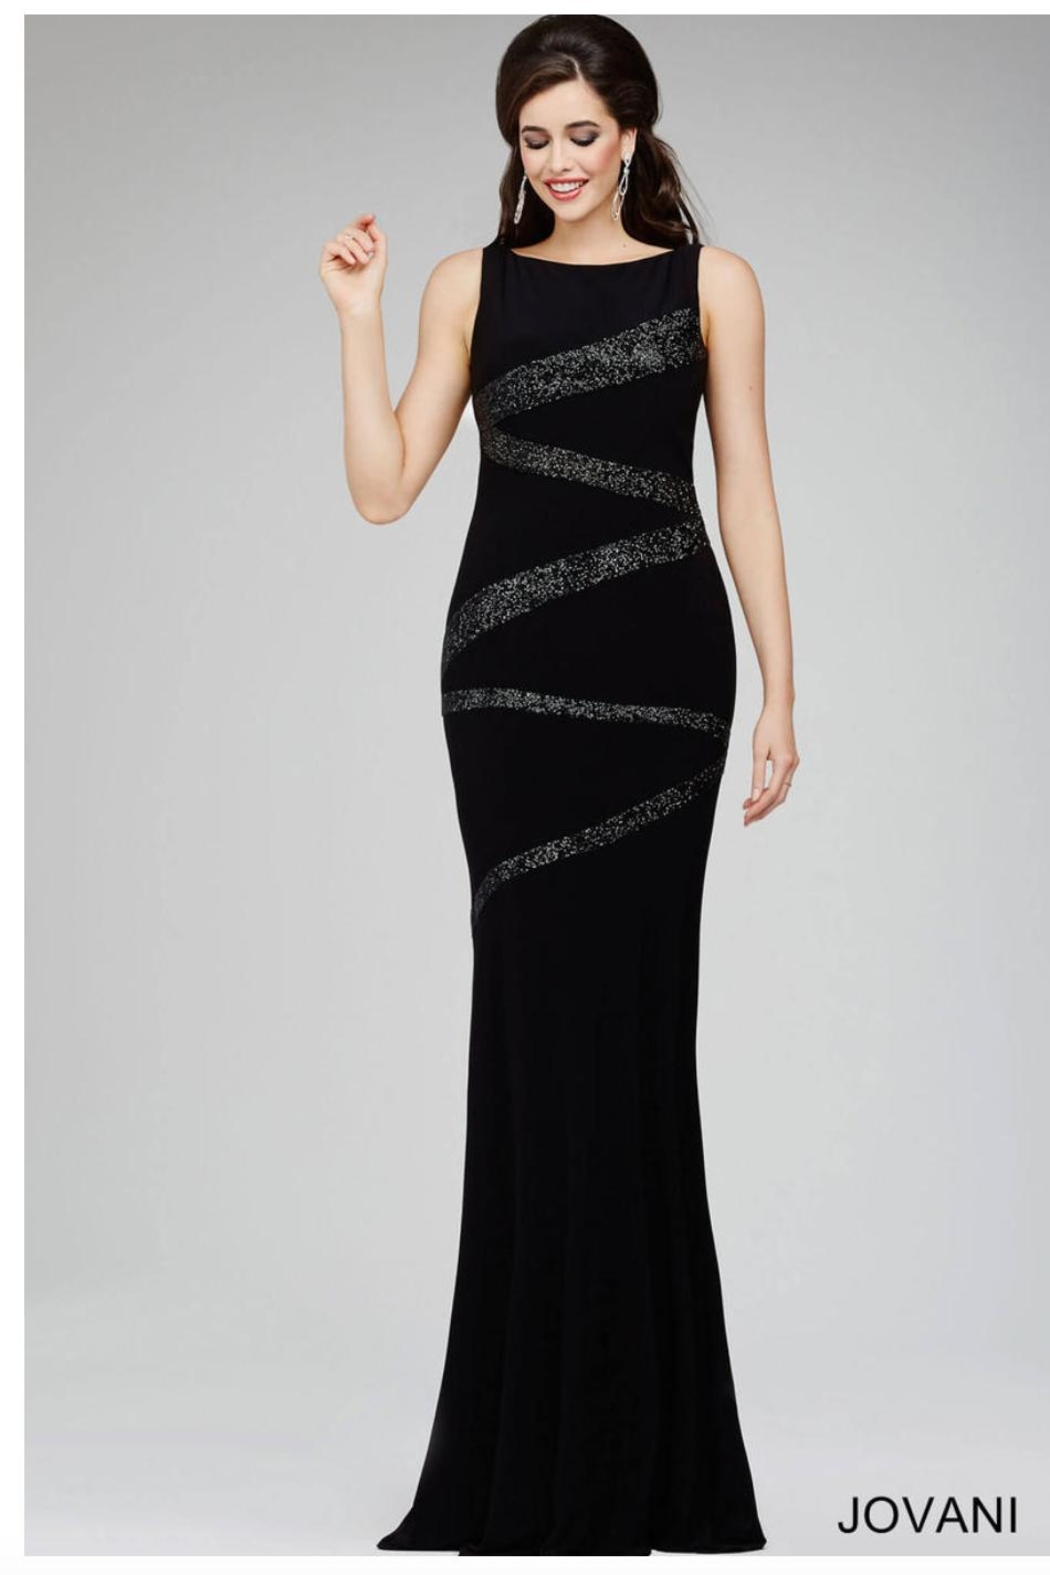 8d00dd2043a Jovani Black Evening Gown from Guilford by A s Unique Boutique ...